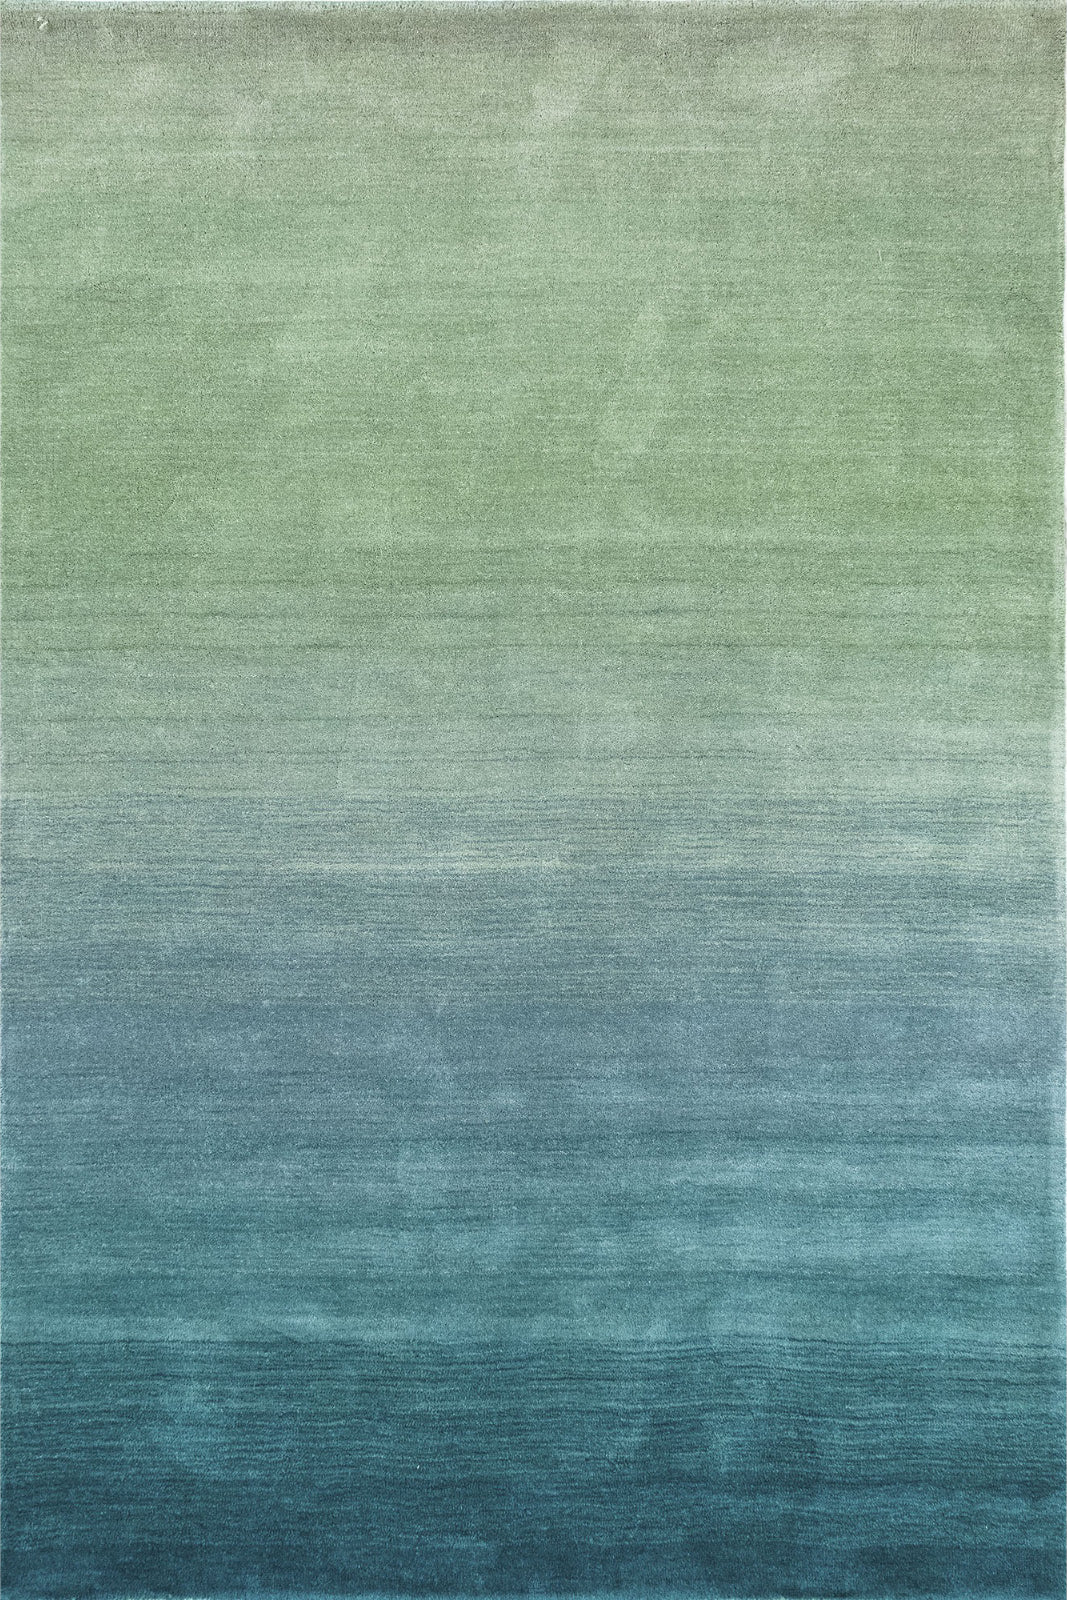 Trans Ocean ARCA Ombre Aqua Area Rug by Liora Manne main image